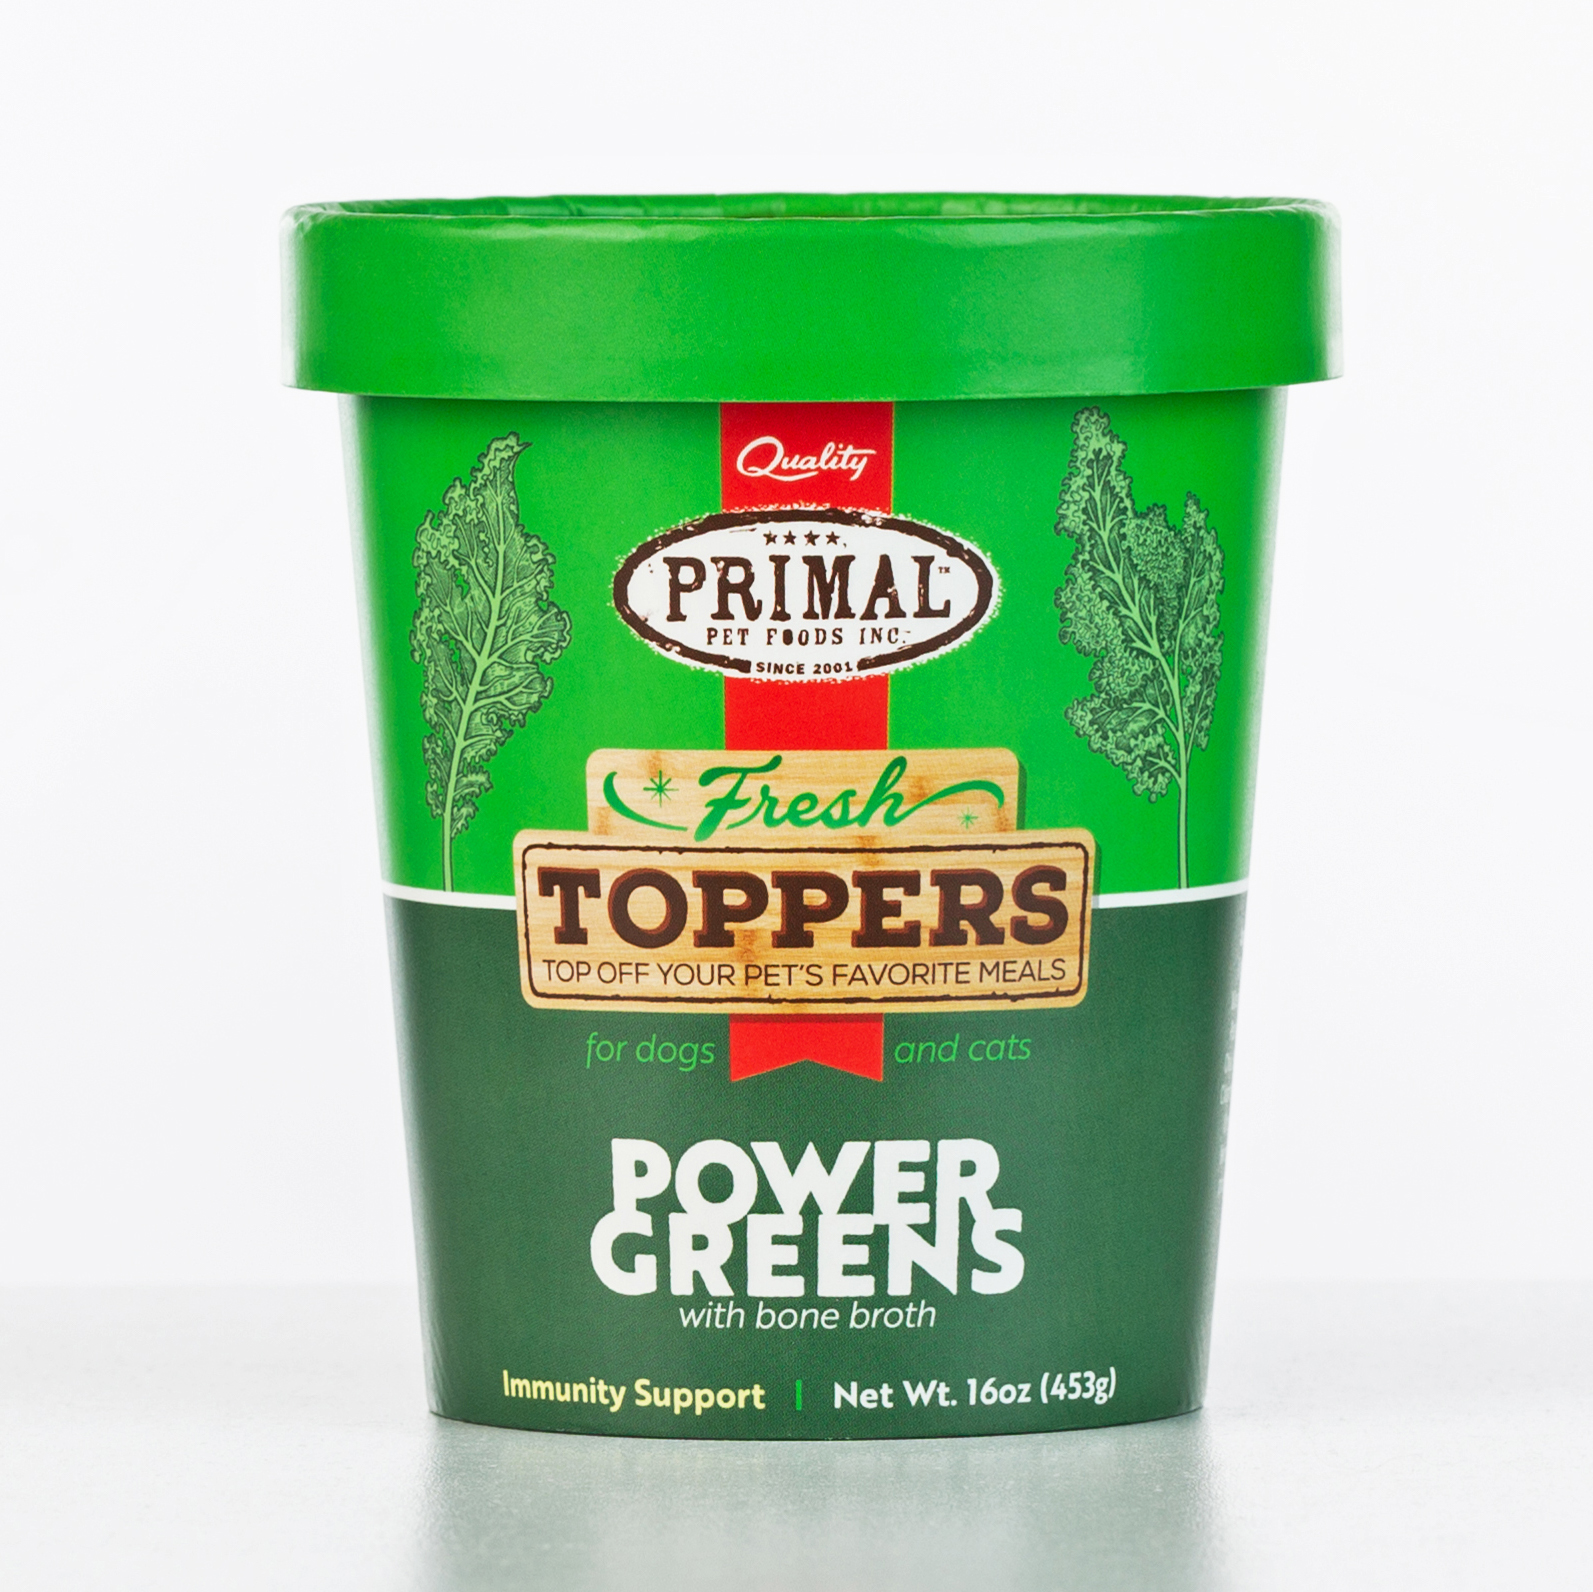 Primal Fresh Toppers Power Greens, Frozen Dog & Cat Food Topper, 16-oz